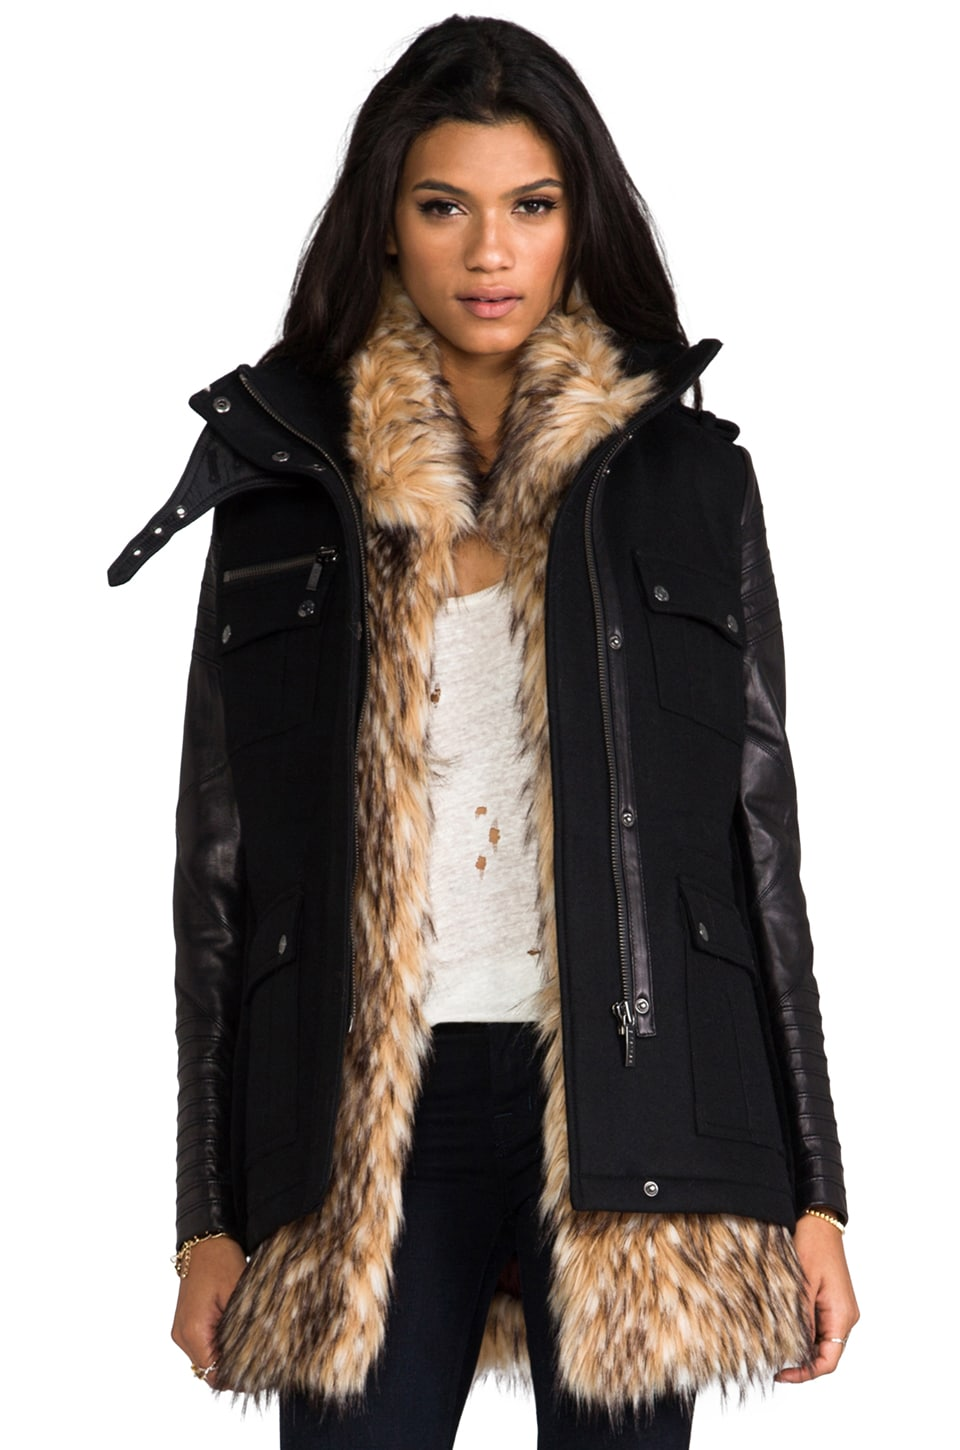 ashley B Leather Sleeved Military Jacket with Removable Faux Fur Vest in Black